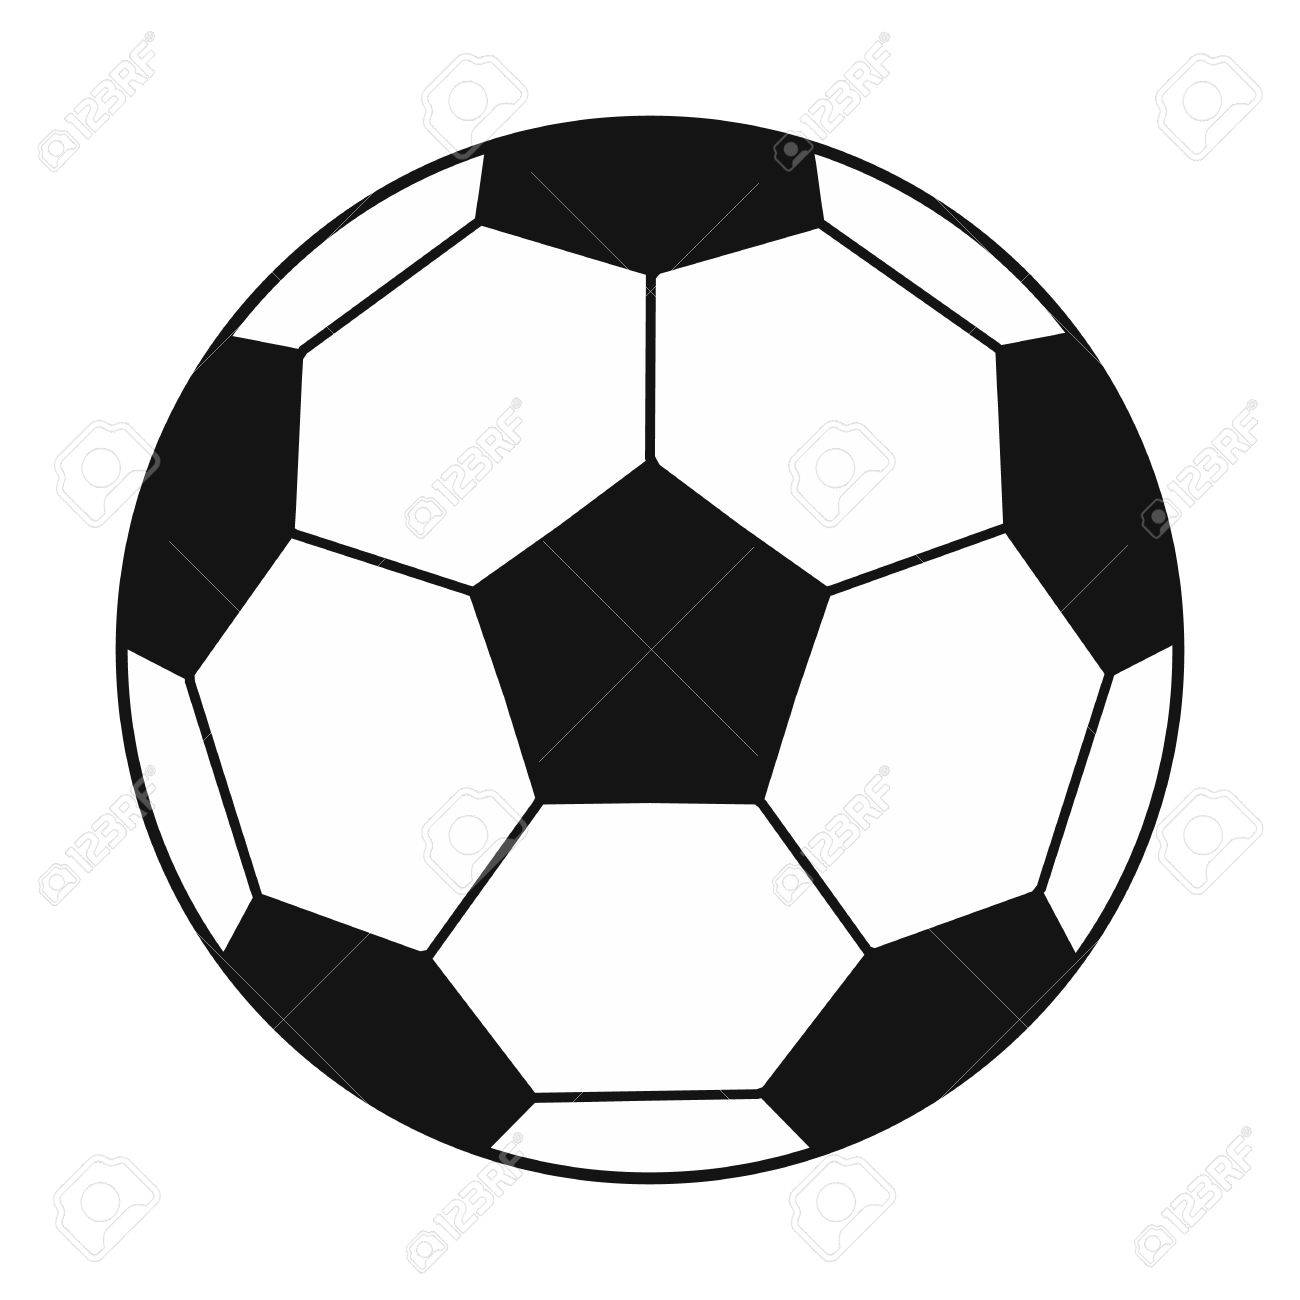 soccer ball black simple icon isolated on white background royalty free  cliparts, vectors, and stock illustration. image 50752187.  123rf